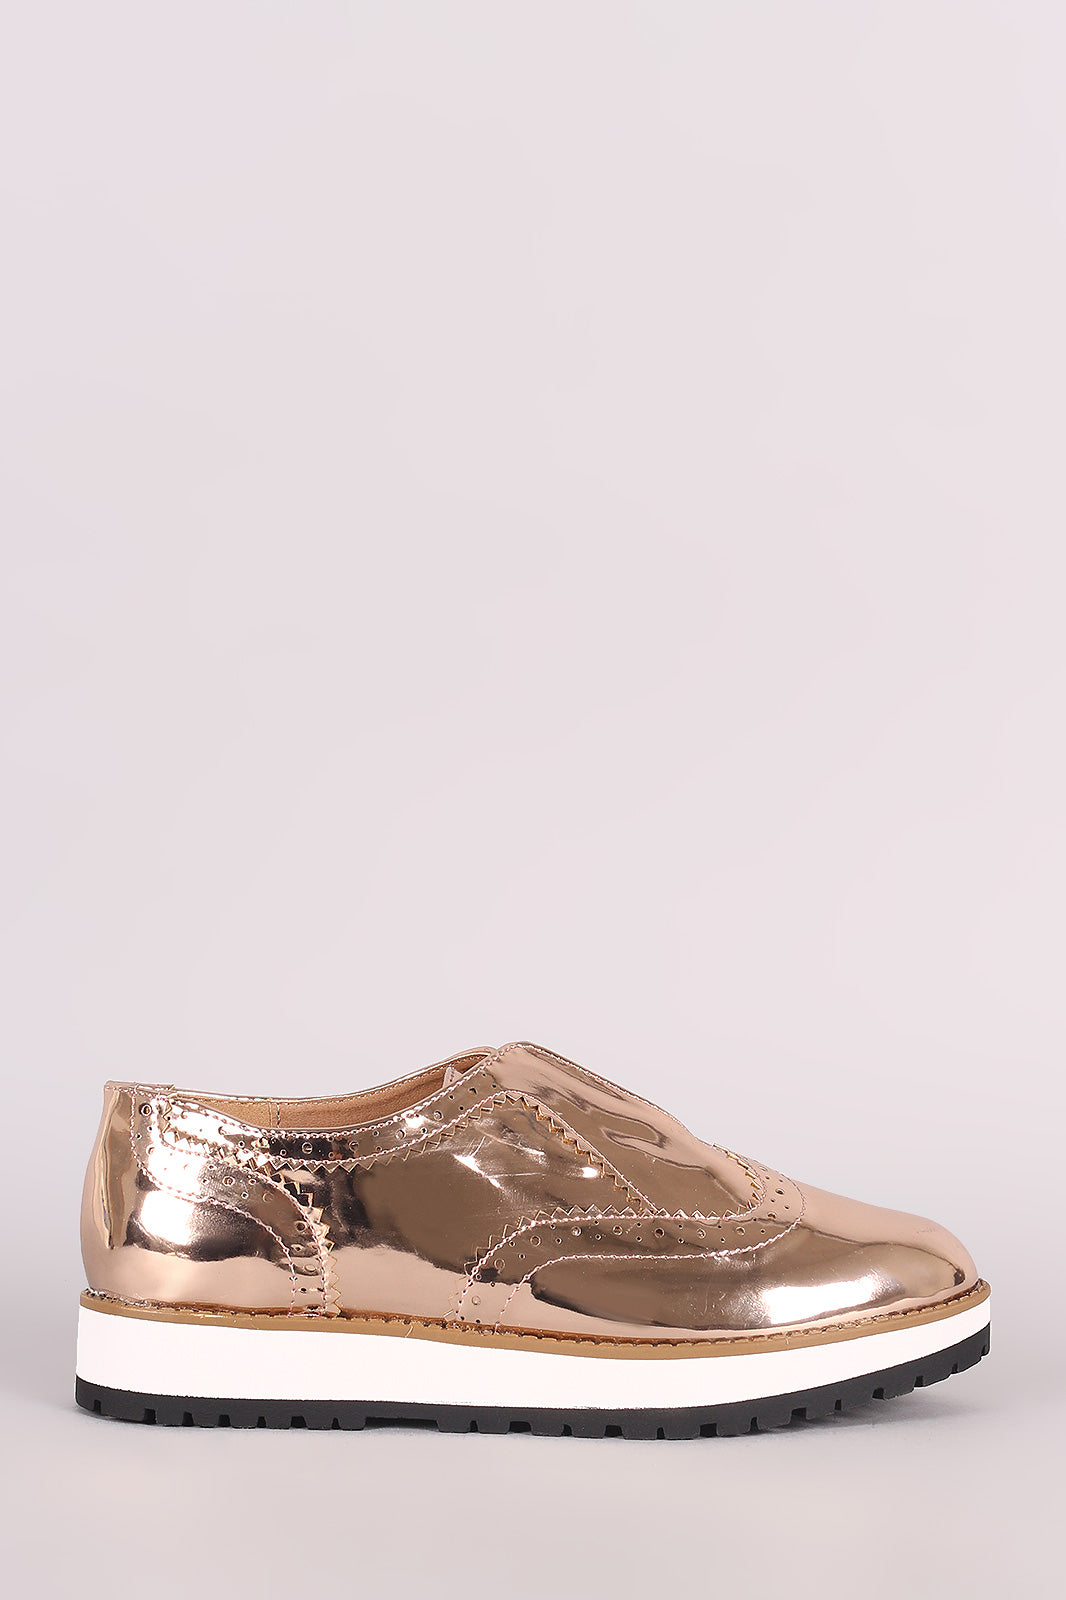 Qupid Perforated Patent Laceless Flatform Oxfords